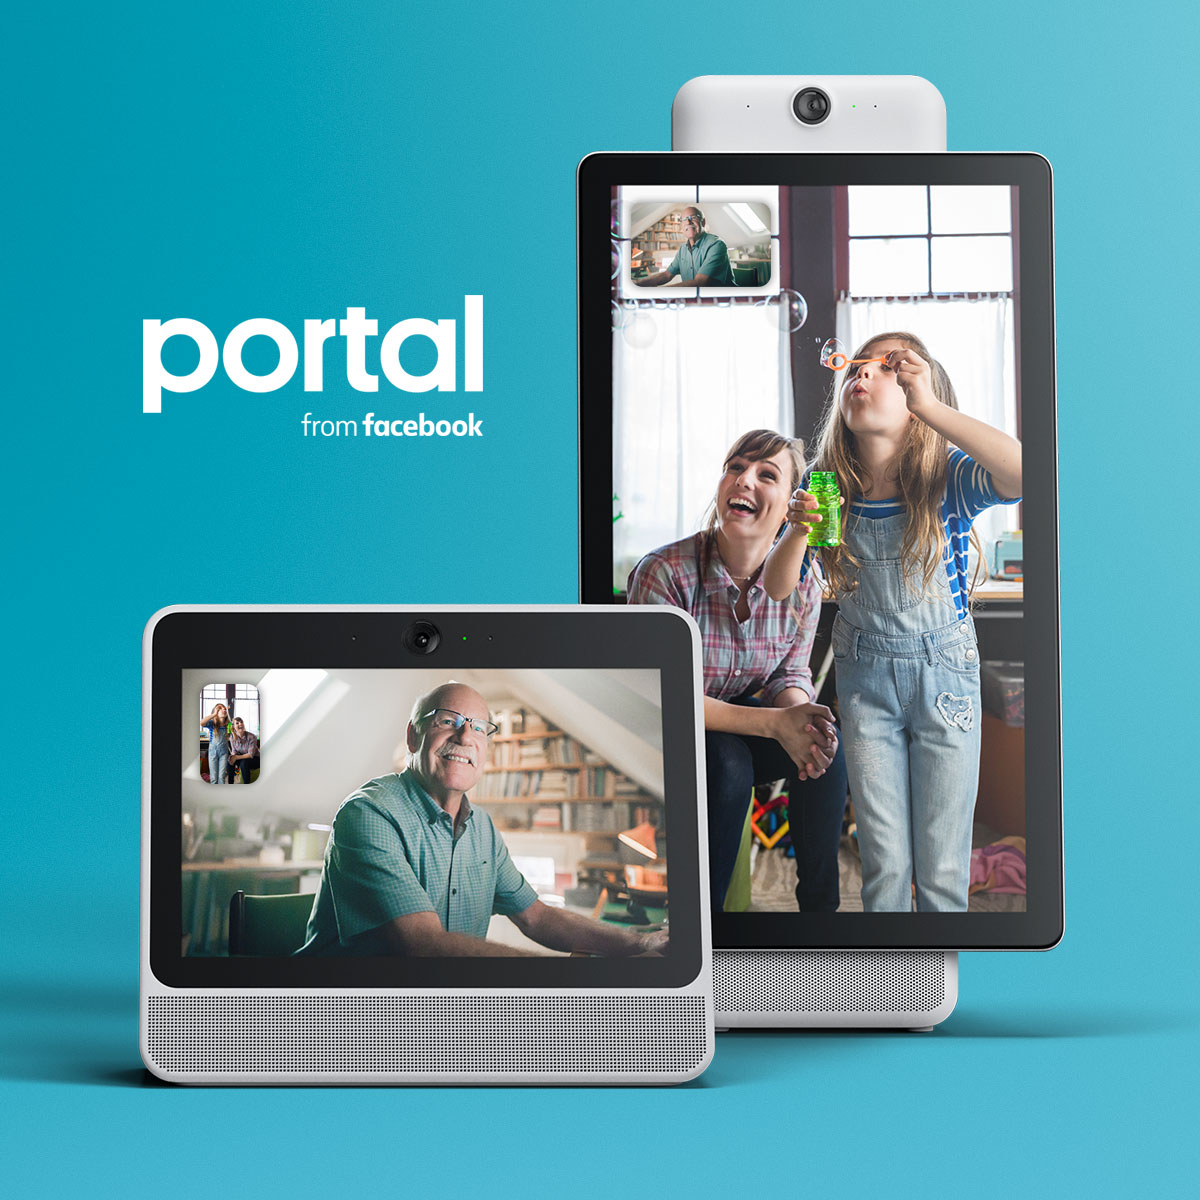 Facebook Unveils Their First Ever Smart Speakers Called The Portal Facebook collects and may review voice data from interactions with the portal. ever smart speakers called the portal